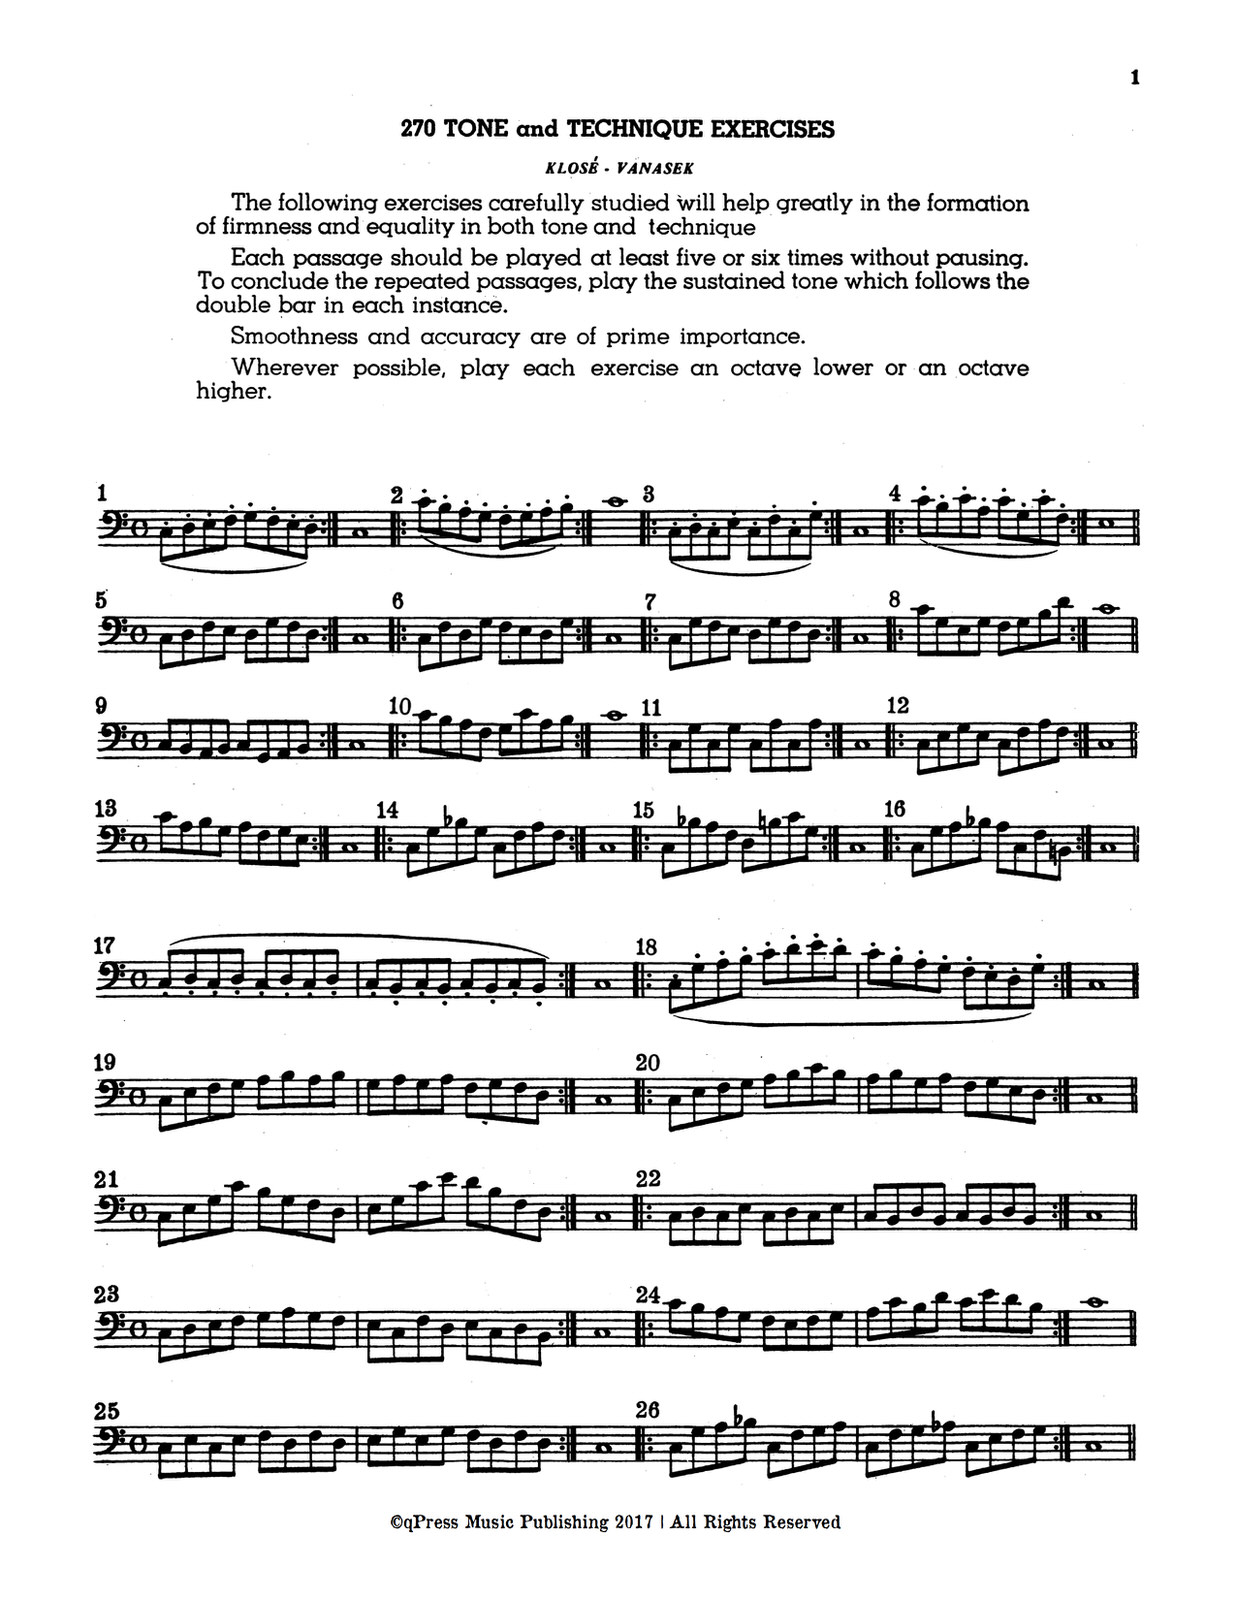 Klose-Vanasek, 270 Tone and Technique Exercises for Trombone, Baritone, or Tuba 2